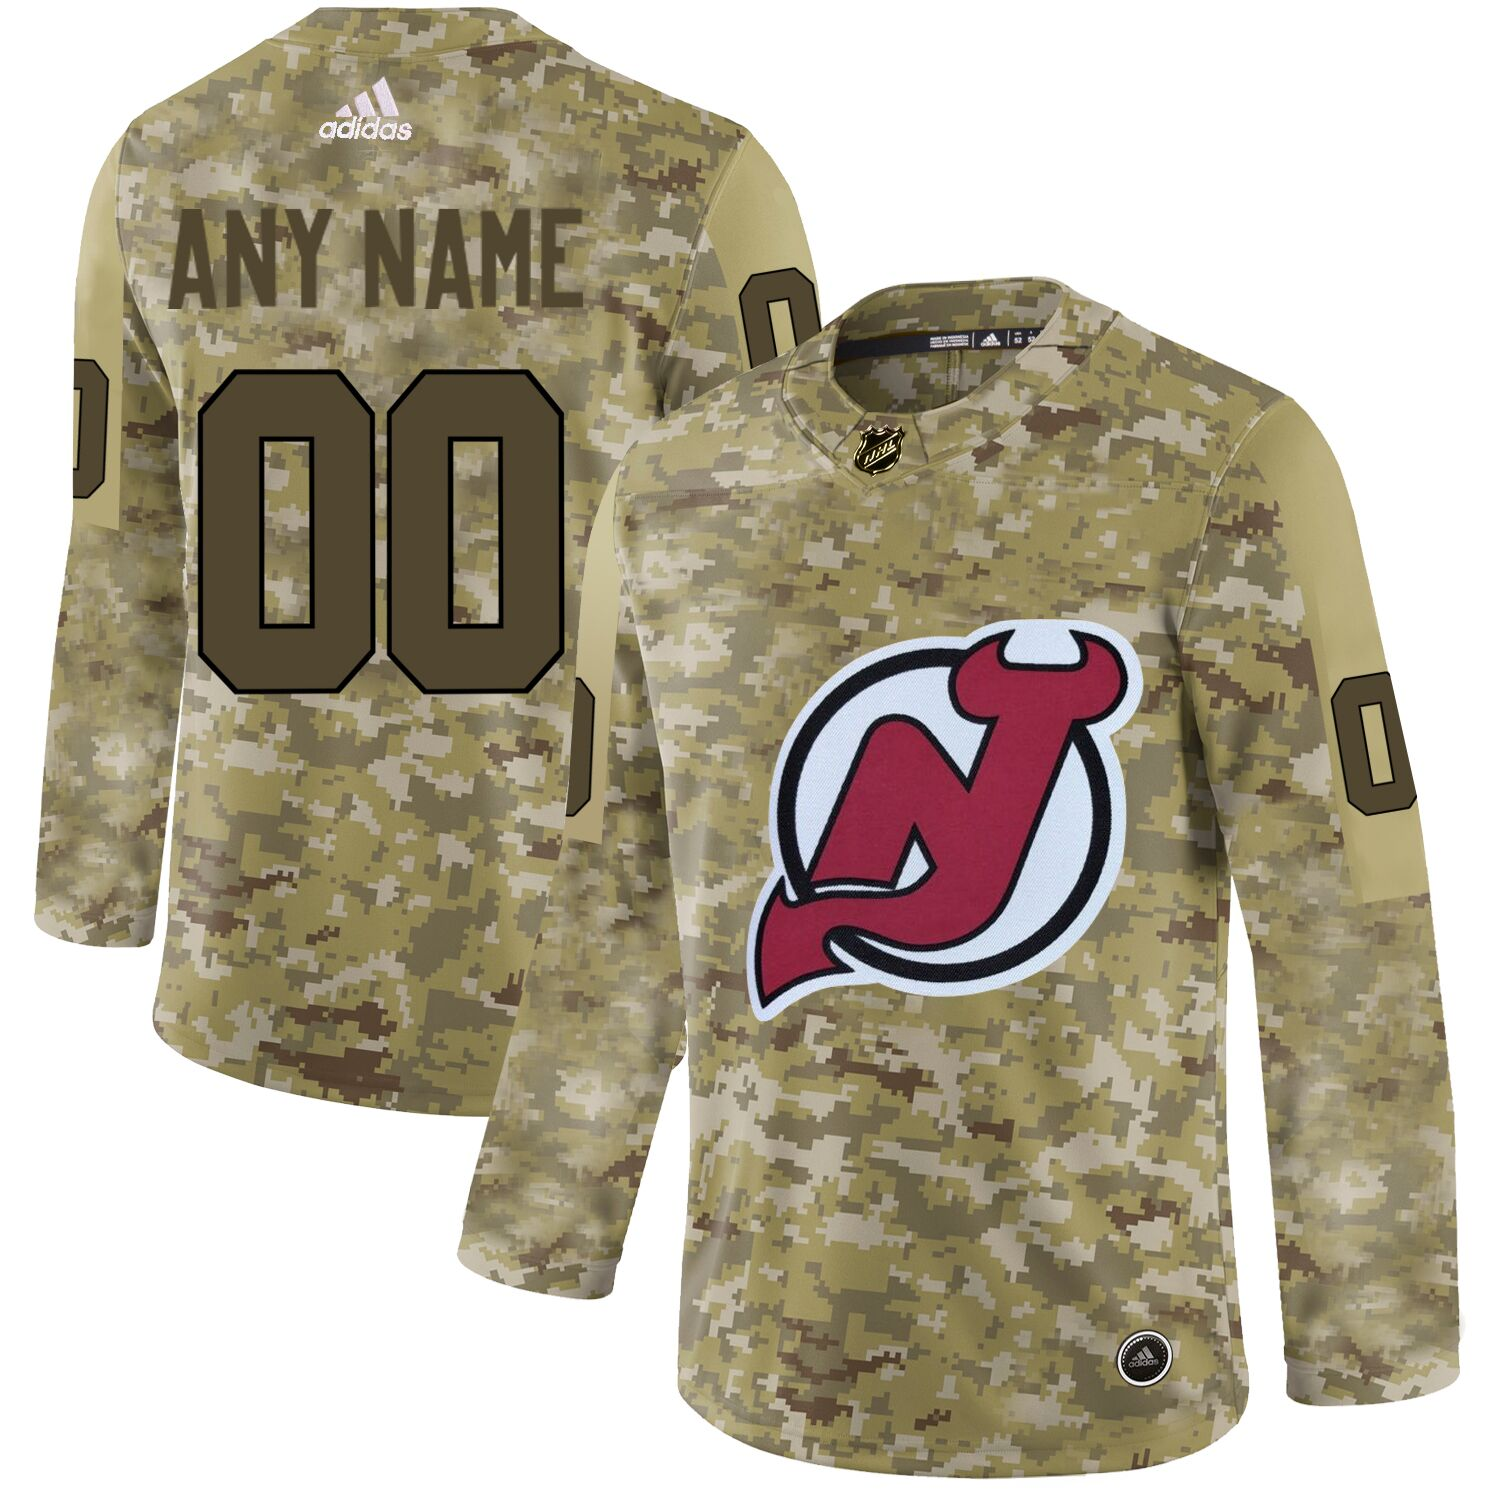 New Jersey Devils Camo Men's Customized Adidas Jersey